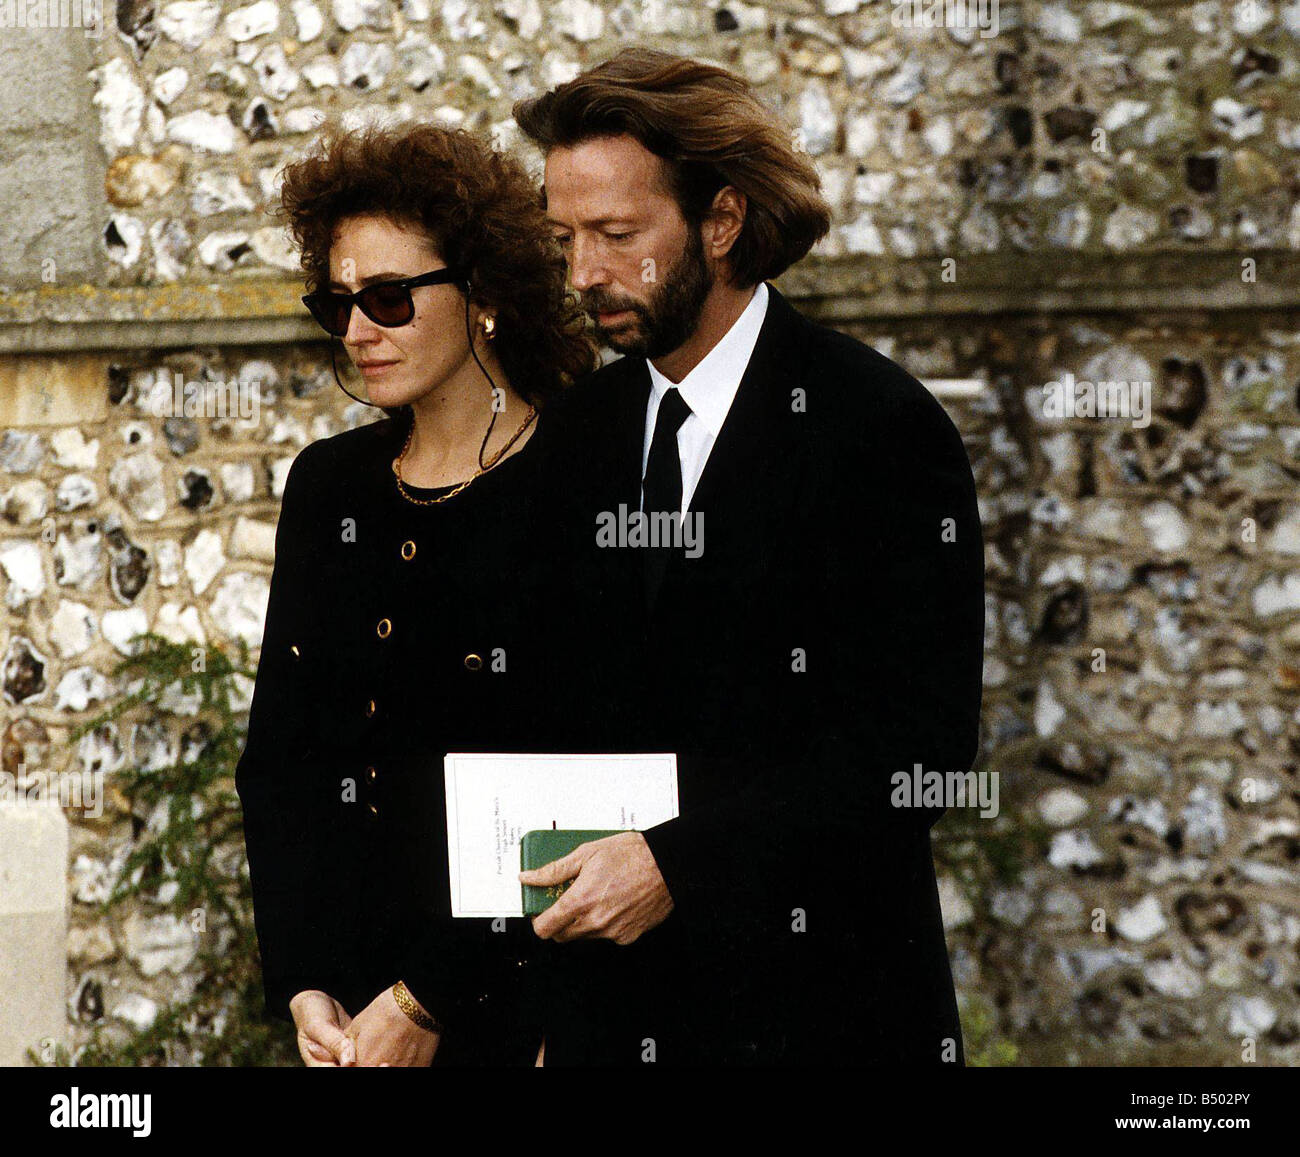 eric clapton singer with mother of his son lori dal santo at the stock photo 20285859 alamy. Black Bedroom Furniture Sets. Home Design Ideas